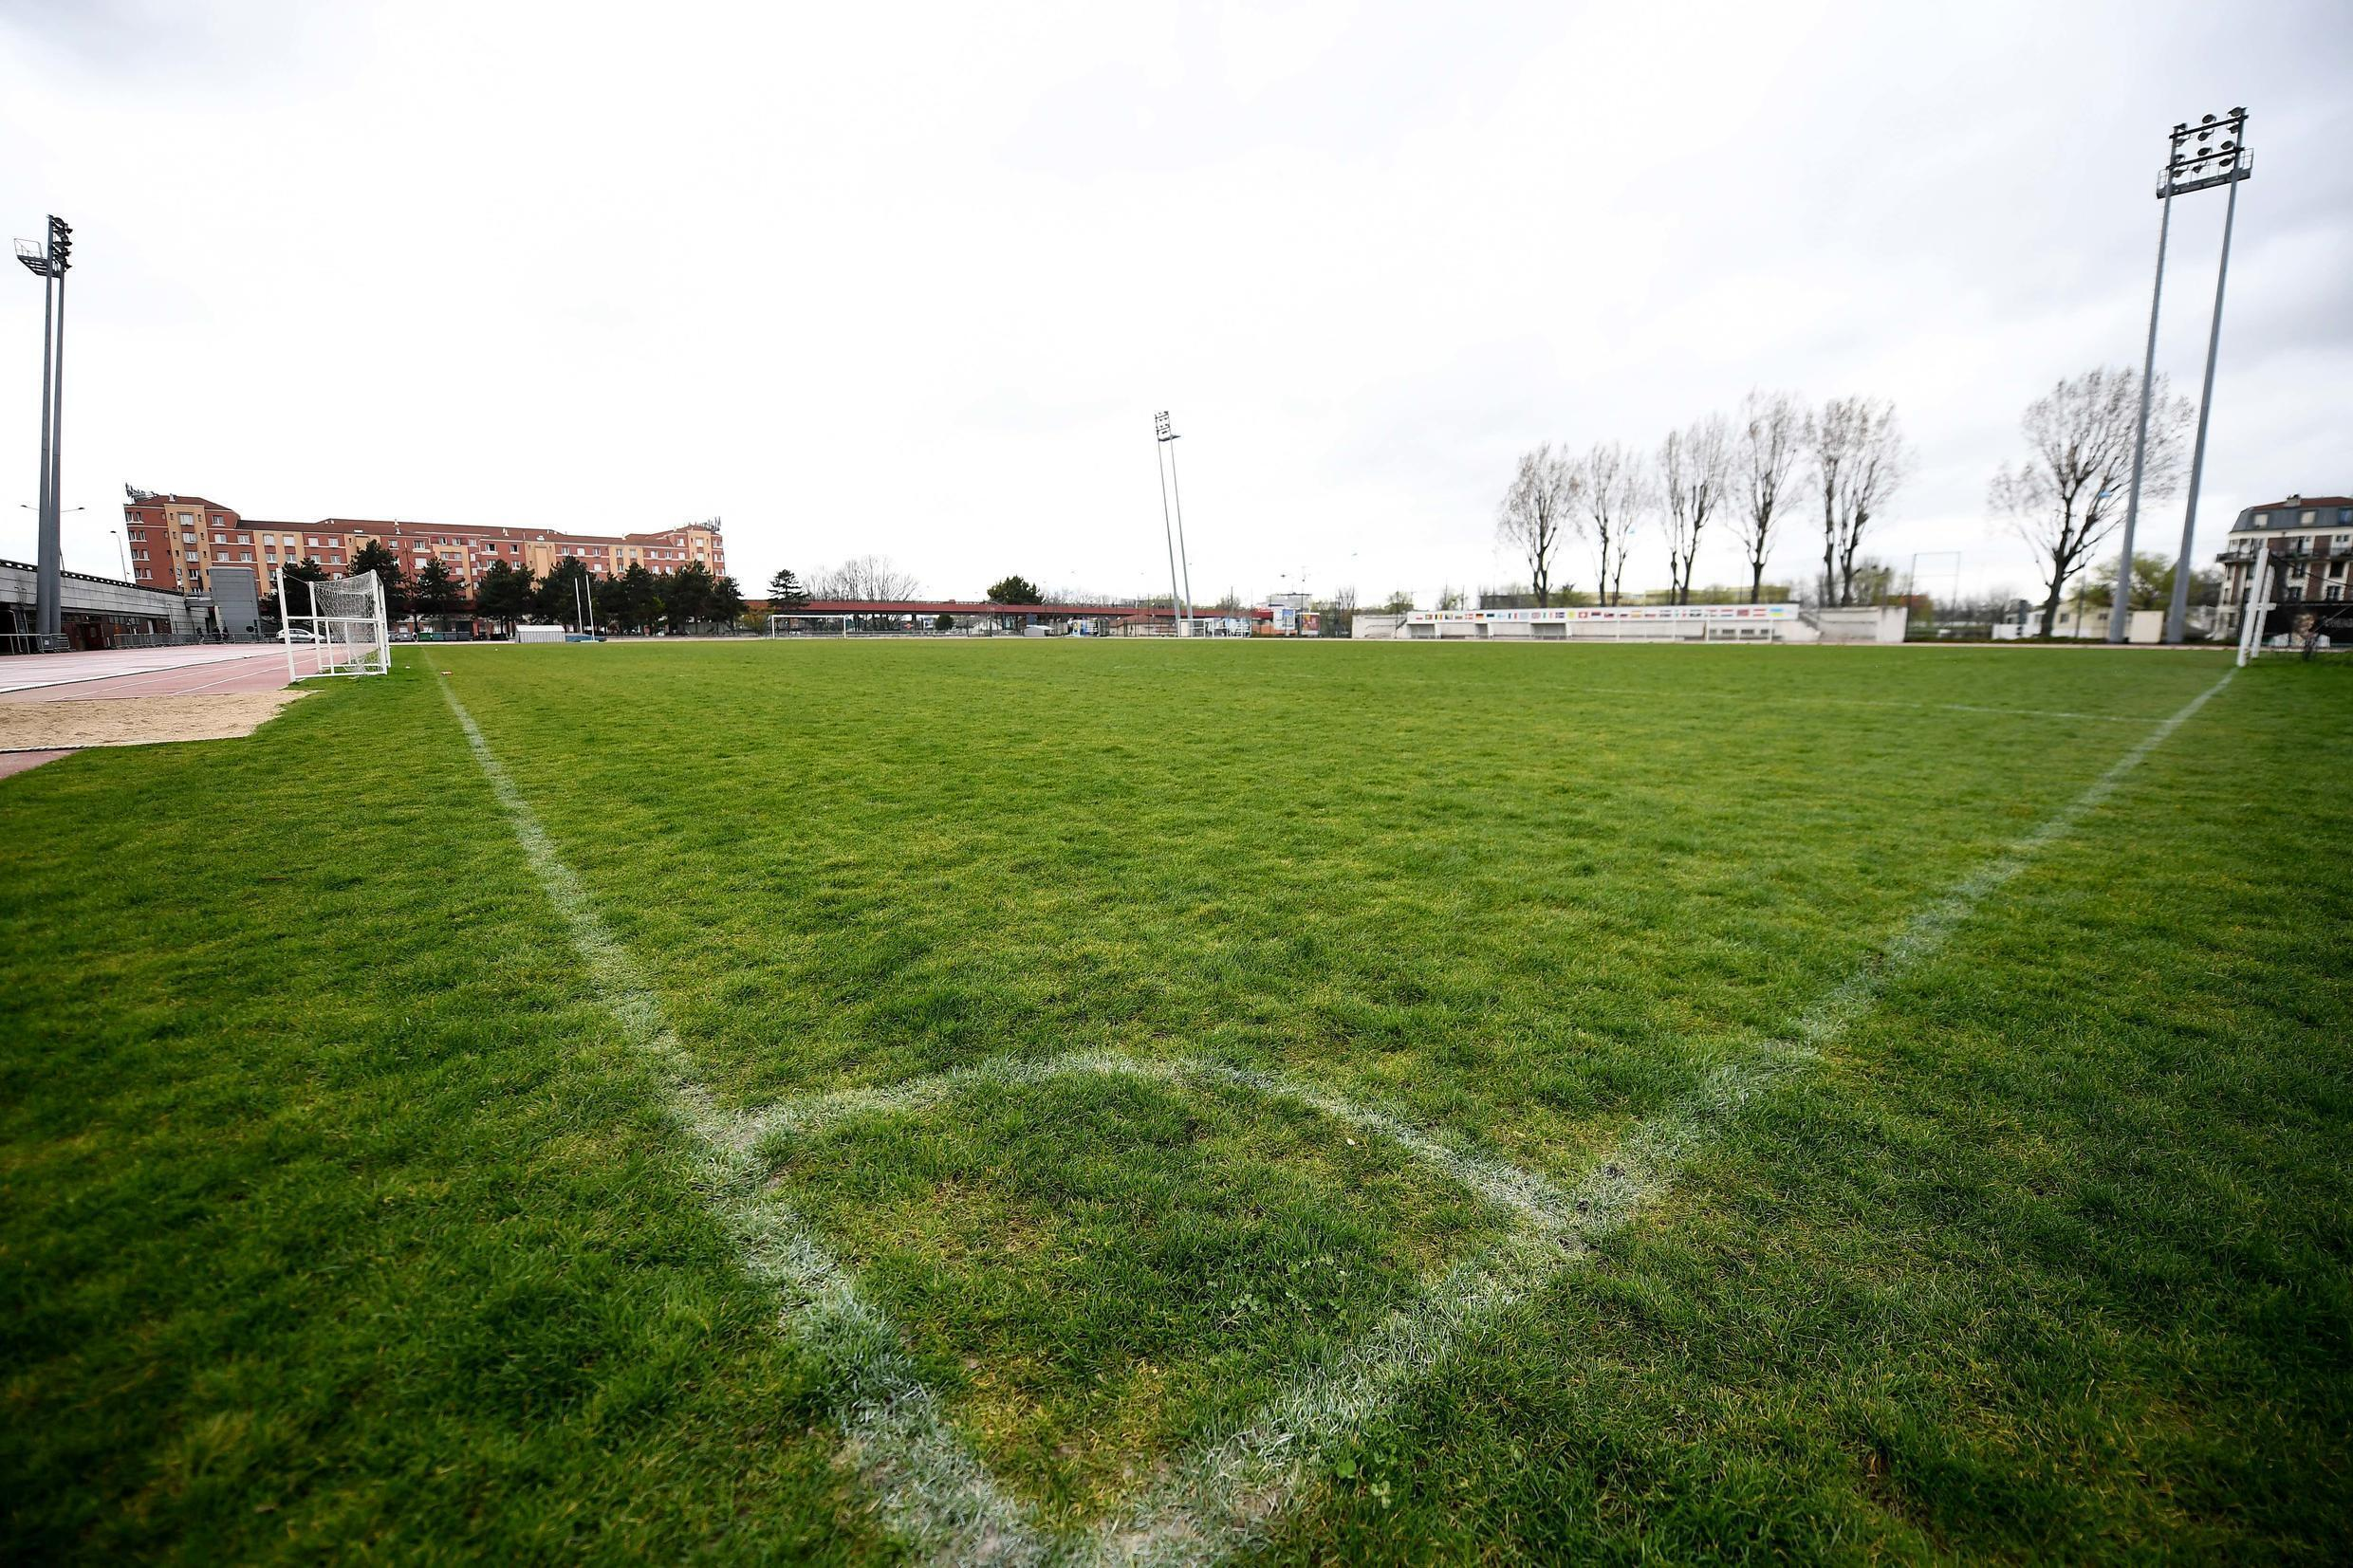 The lawn of a stadium in Saint-Denis, France, empty due to the Covid-10 pandemic on March 14, 2020.